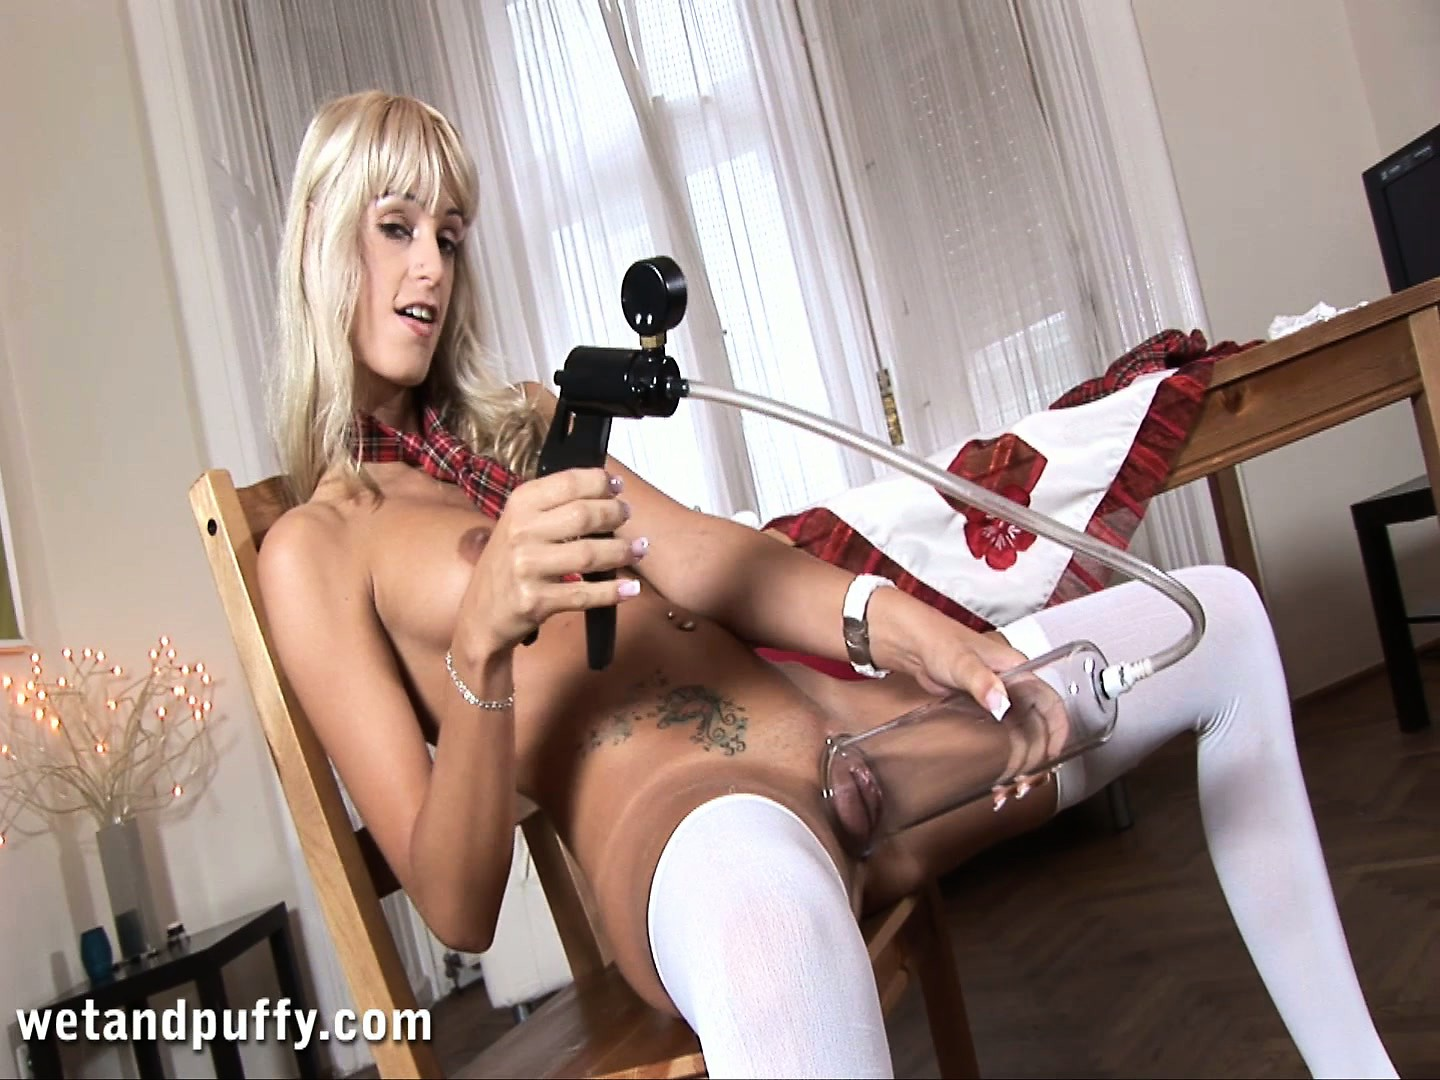 Porno Video of Sexy Blonde Erica Puts On Display Her Wonderful Tits And Her Passion For Masturbation